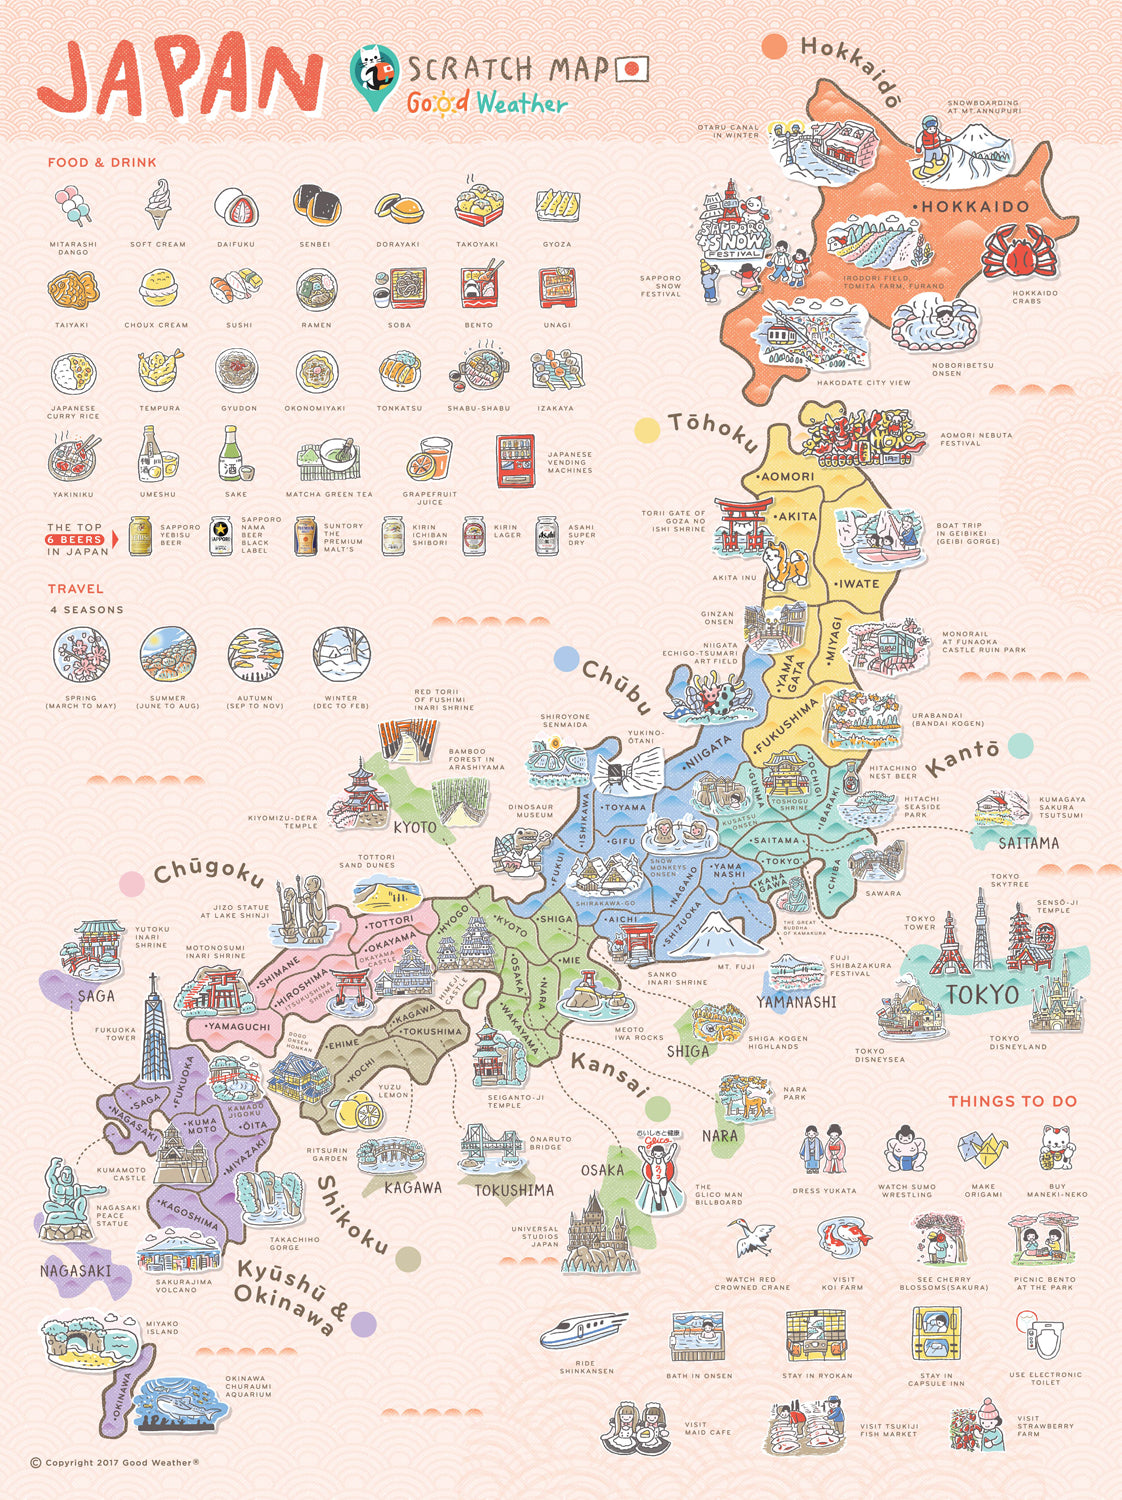 Japan Scratch Travel Map Travel To Japan